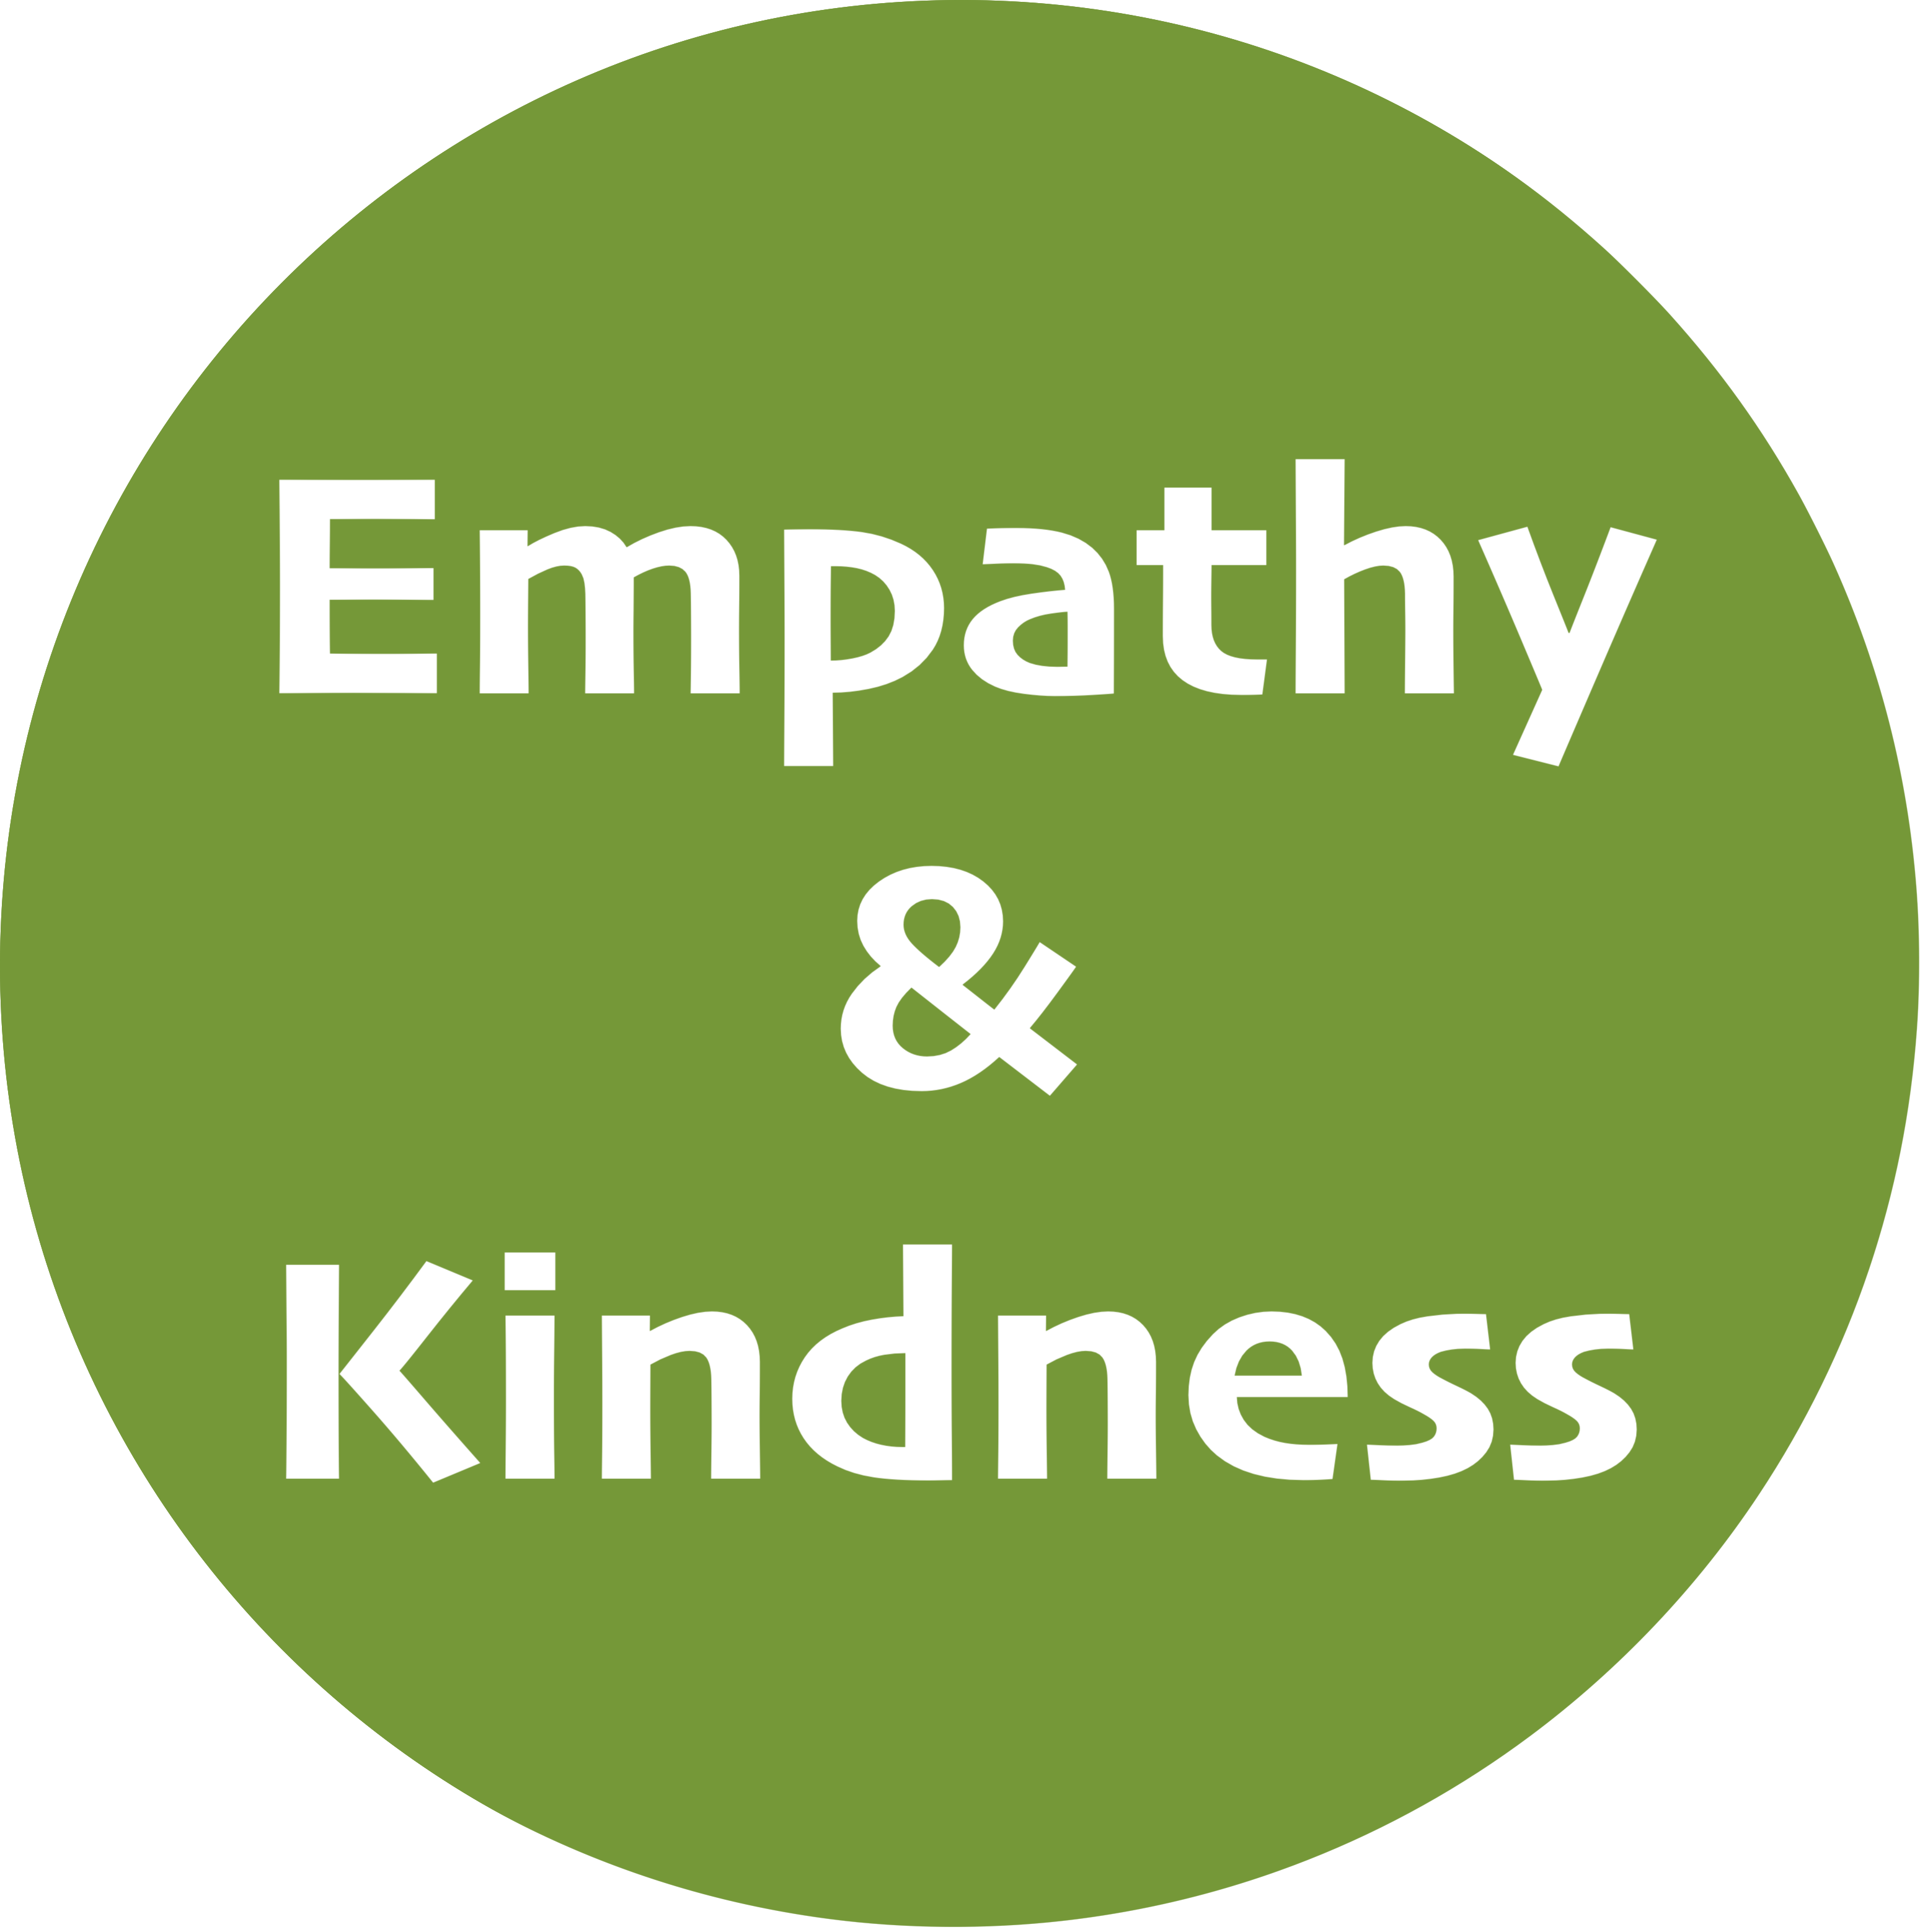 Empathy and Kindness